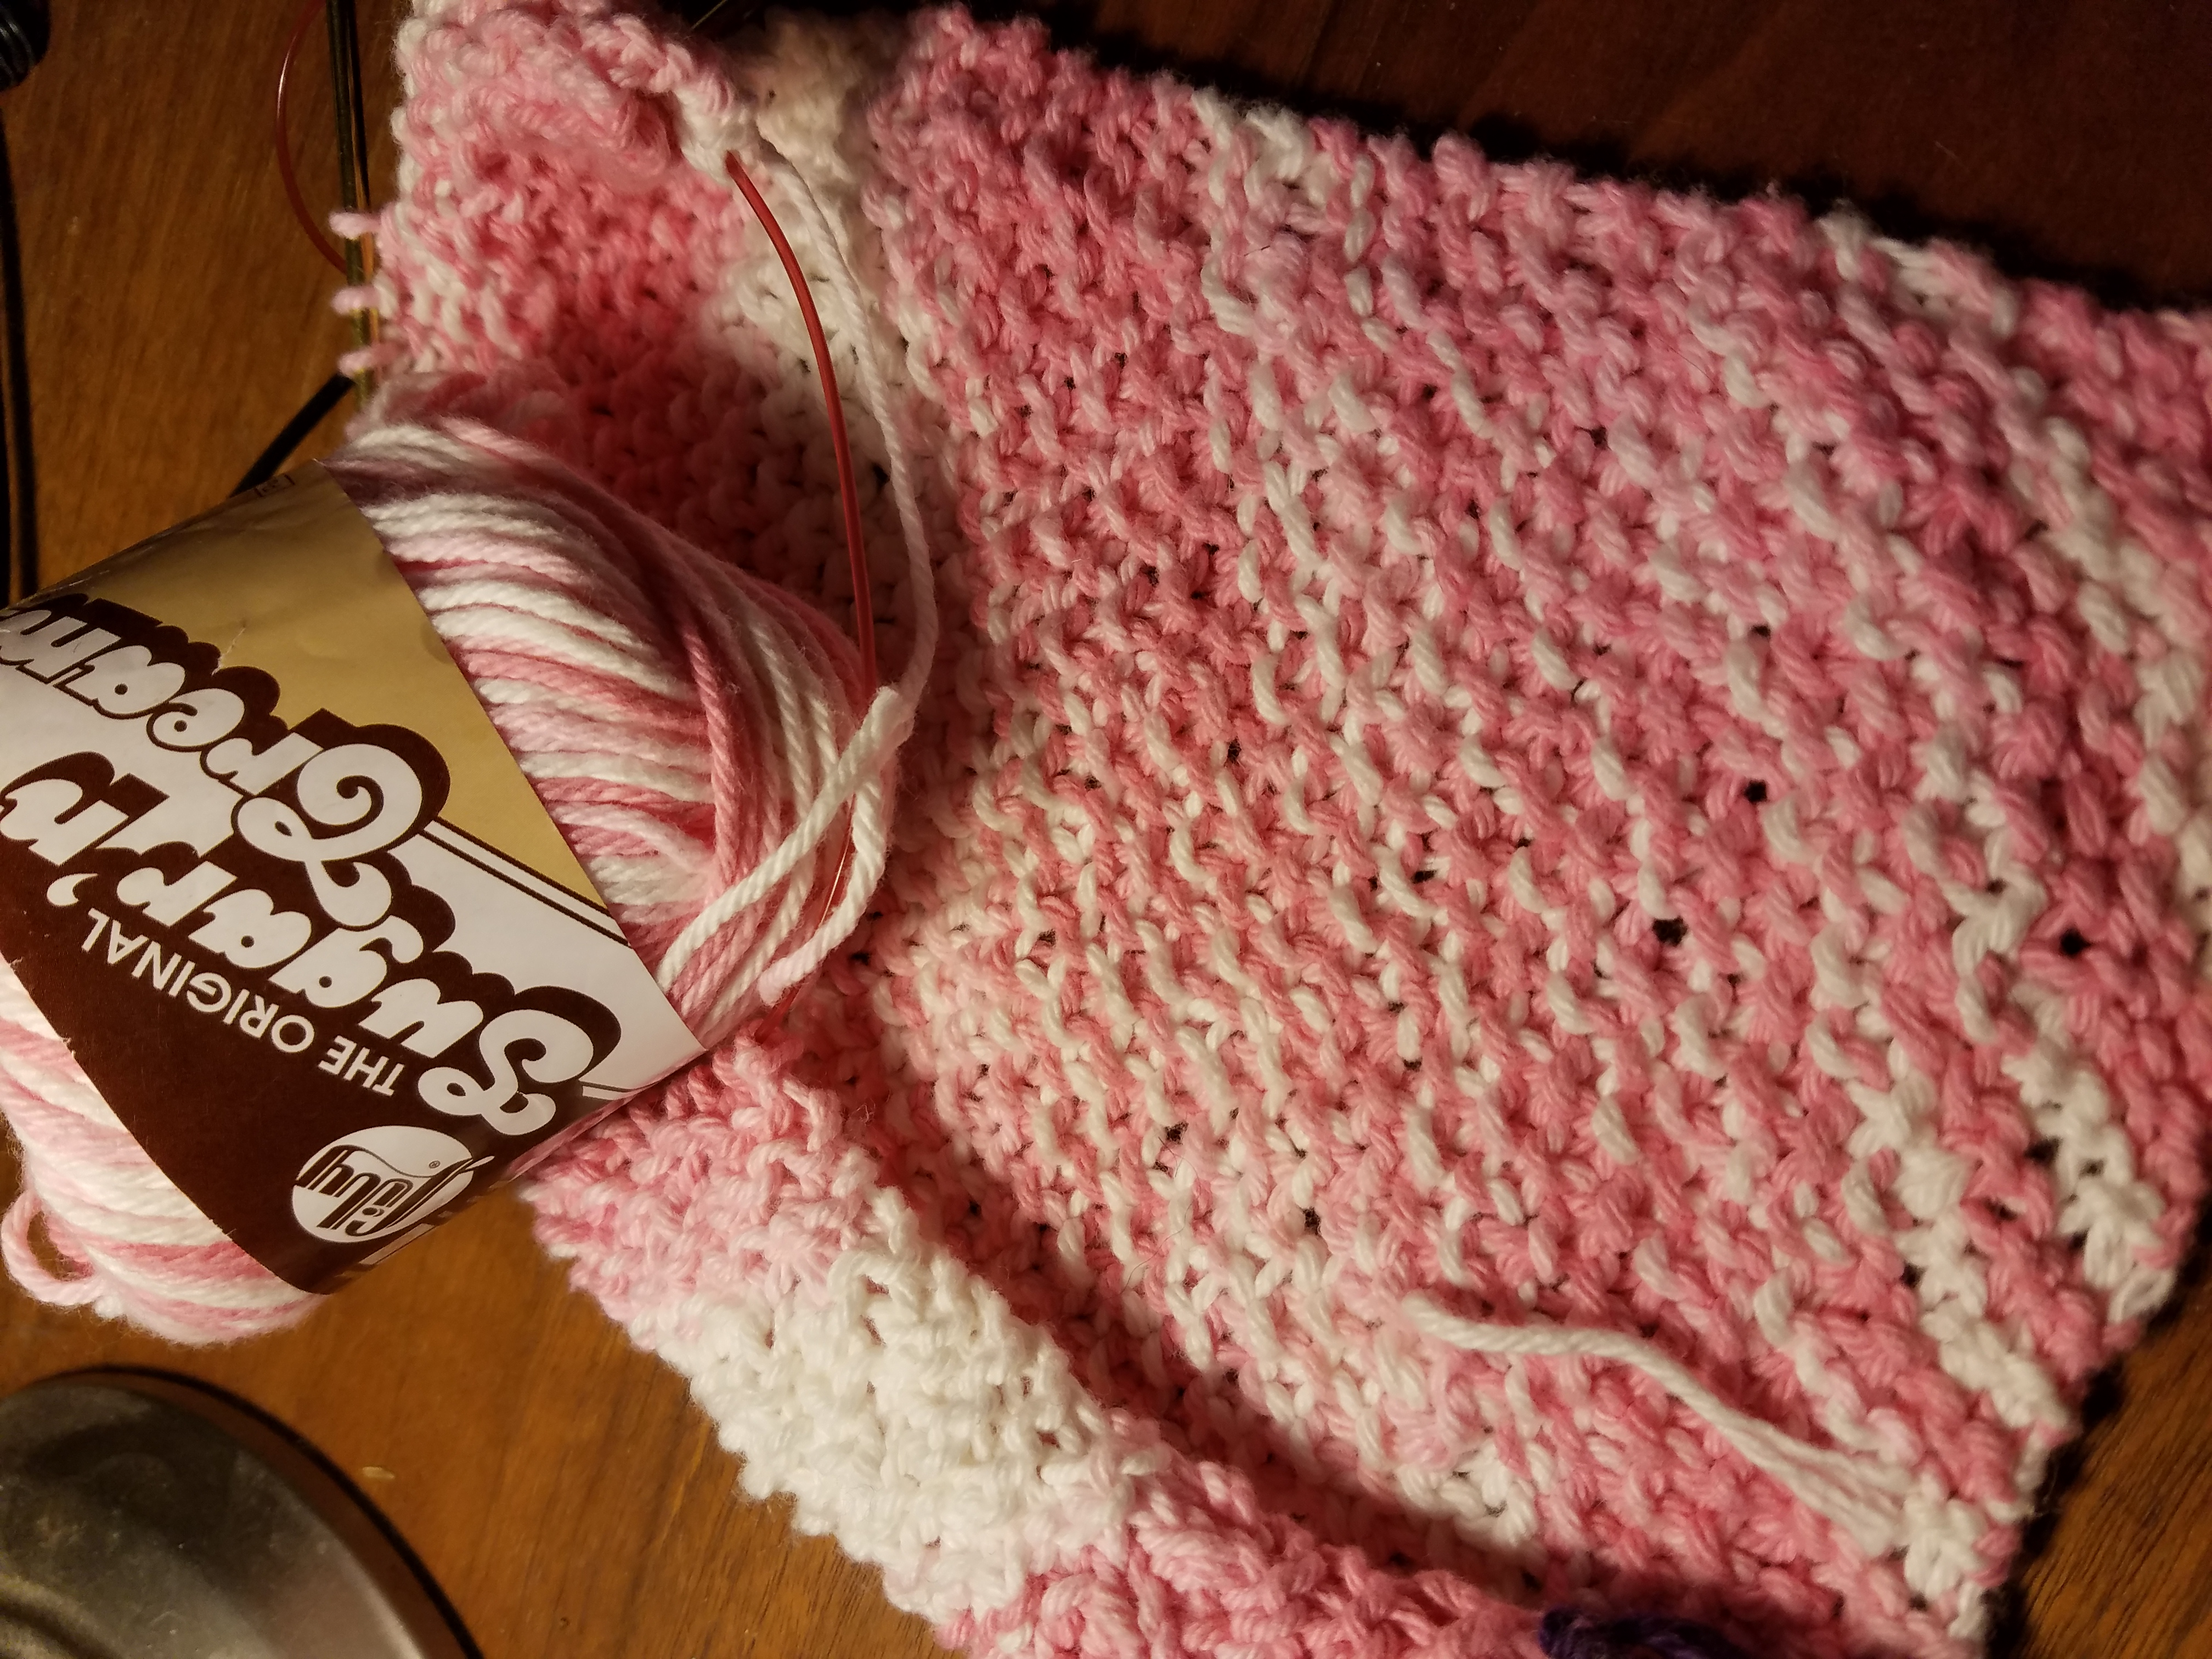 Sugar'n Cream yarn knit in seed stitch.